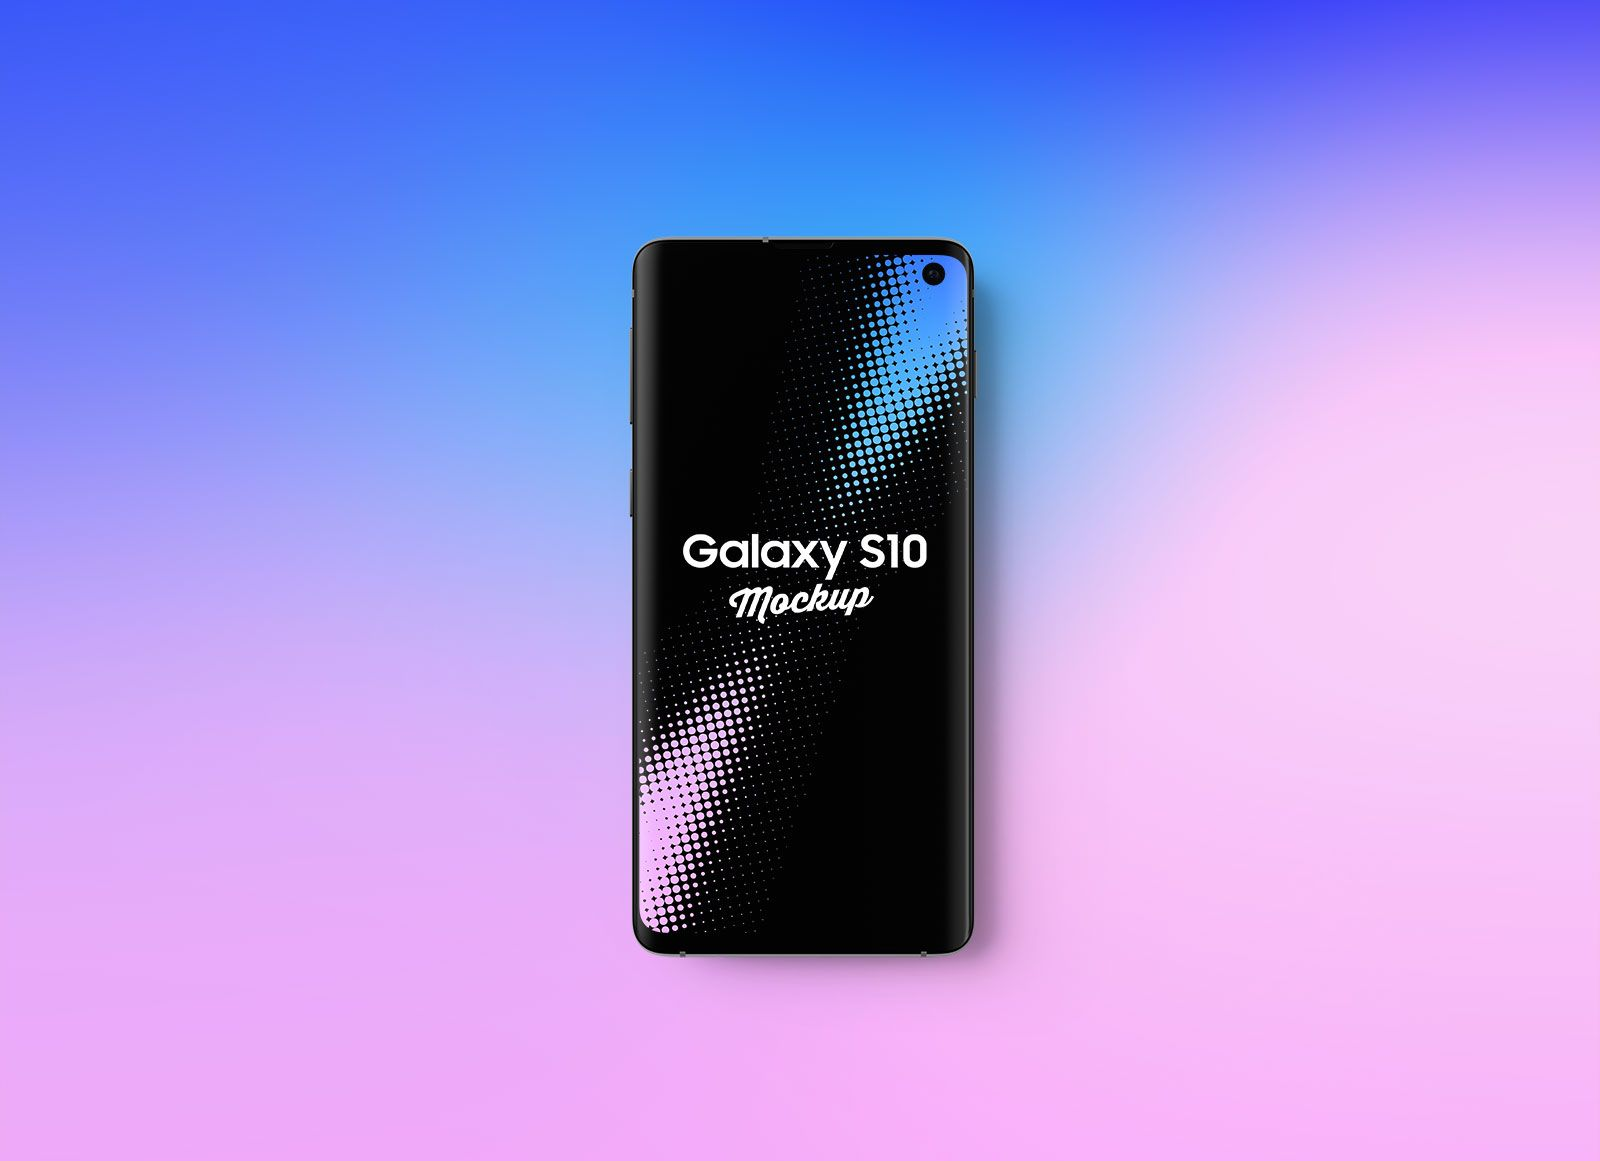 bc3f5bbcfb2f86 Free Samsung Galaxy S10 Mockup PSD | Free Graphic Goodies in 2019 ...